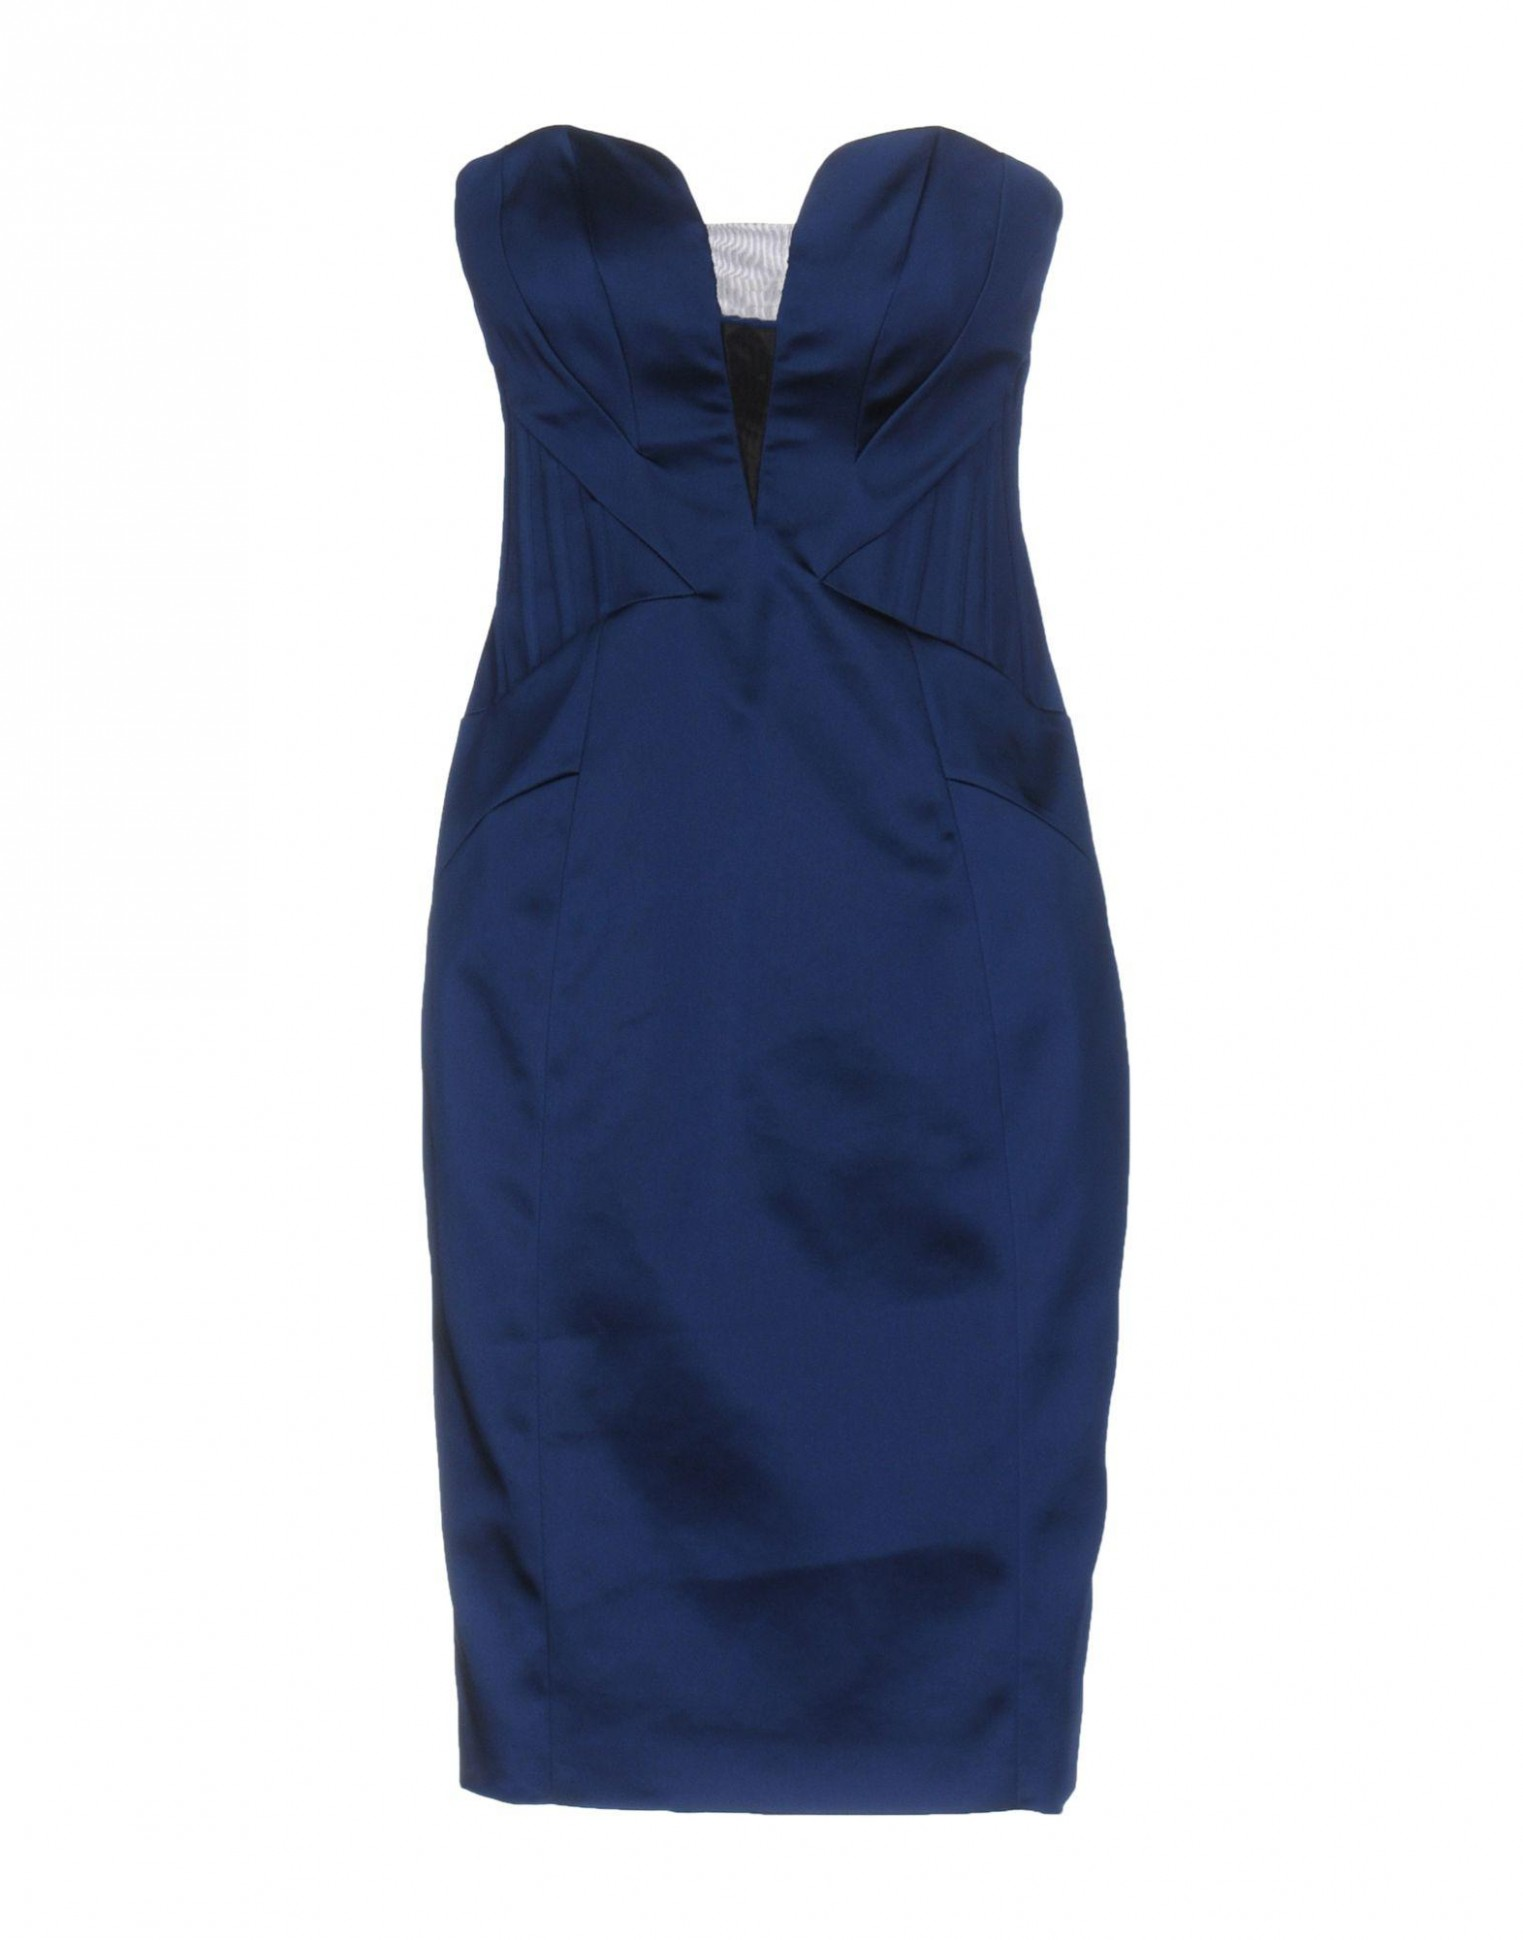 enges kleid in bright blue enges kleid